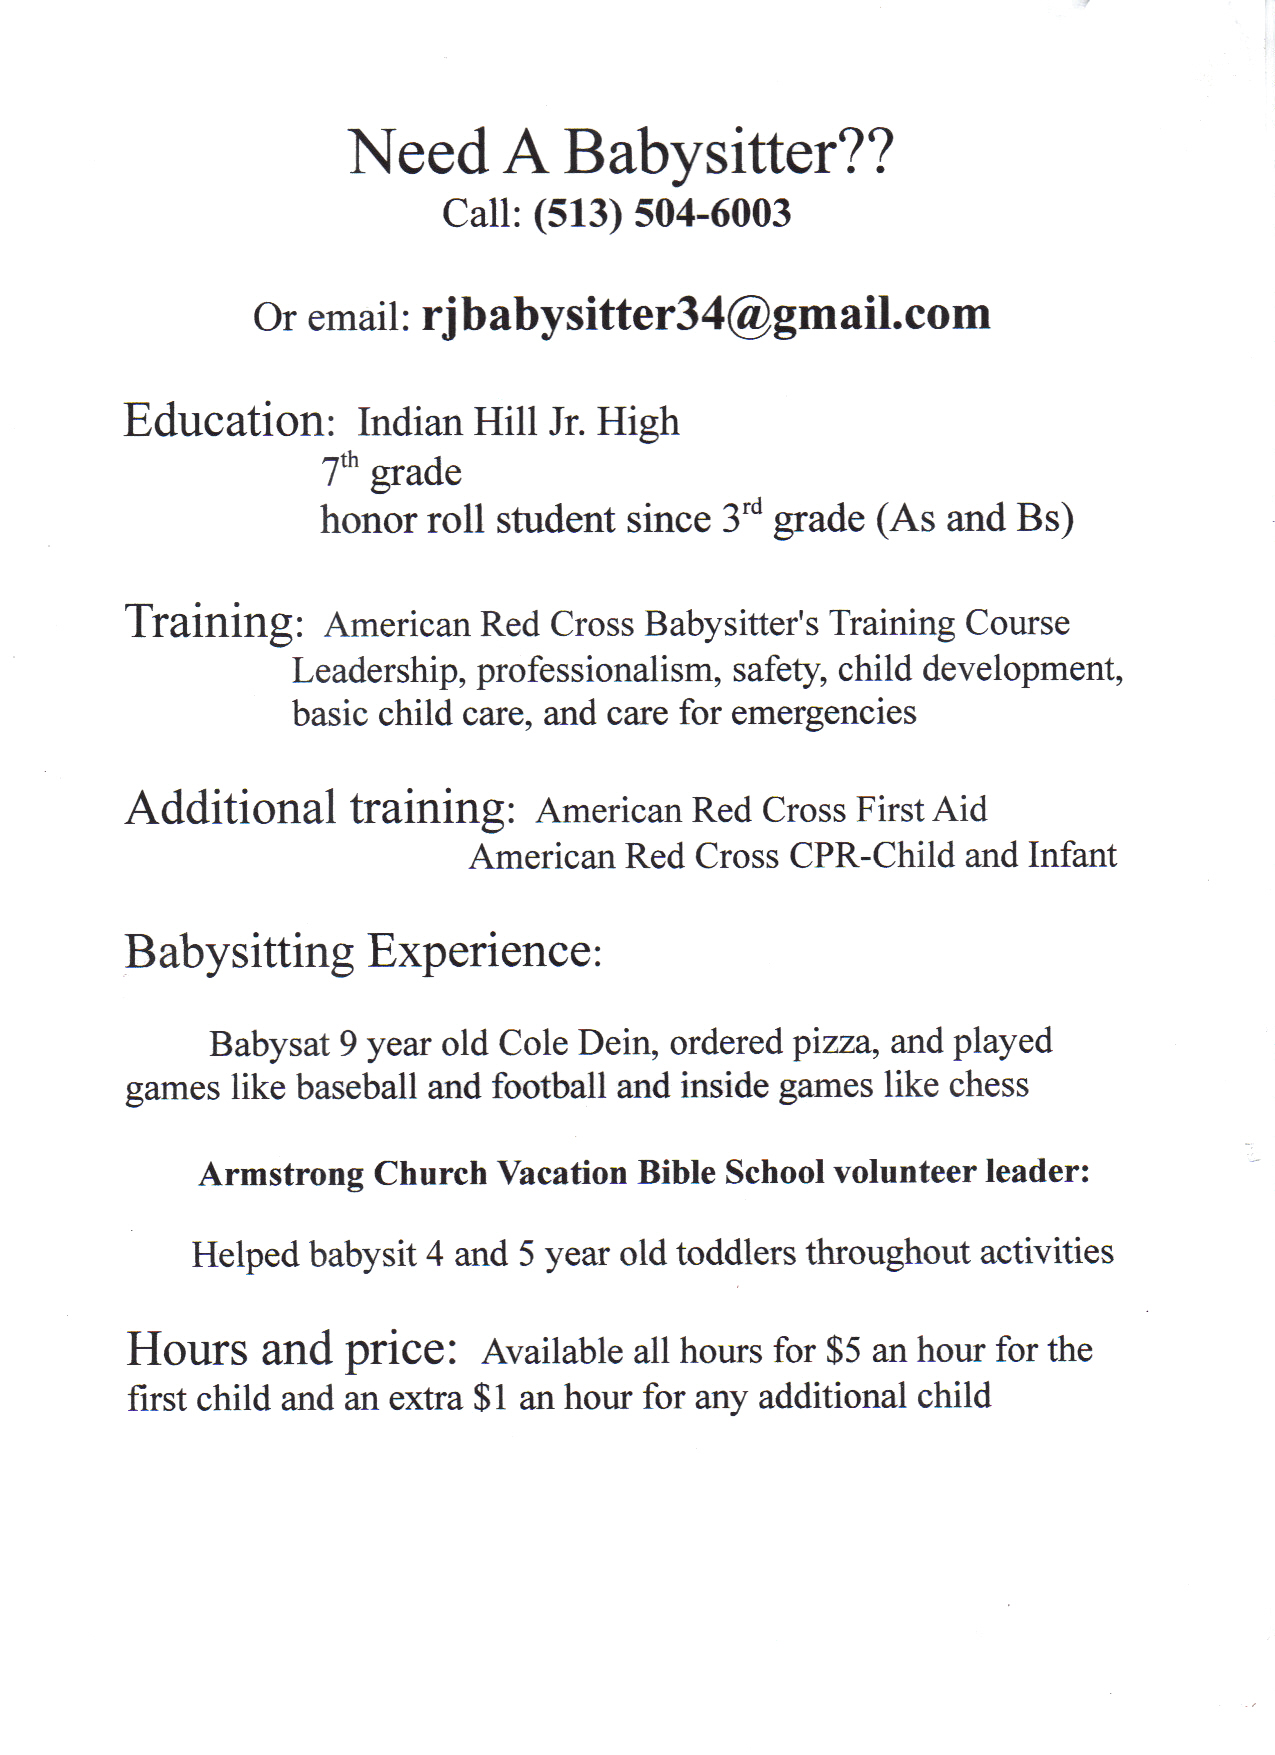 pics photos resume templates babysitter resume template - Sample Cover Letter For Babysitting Job